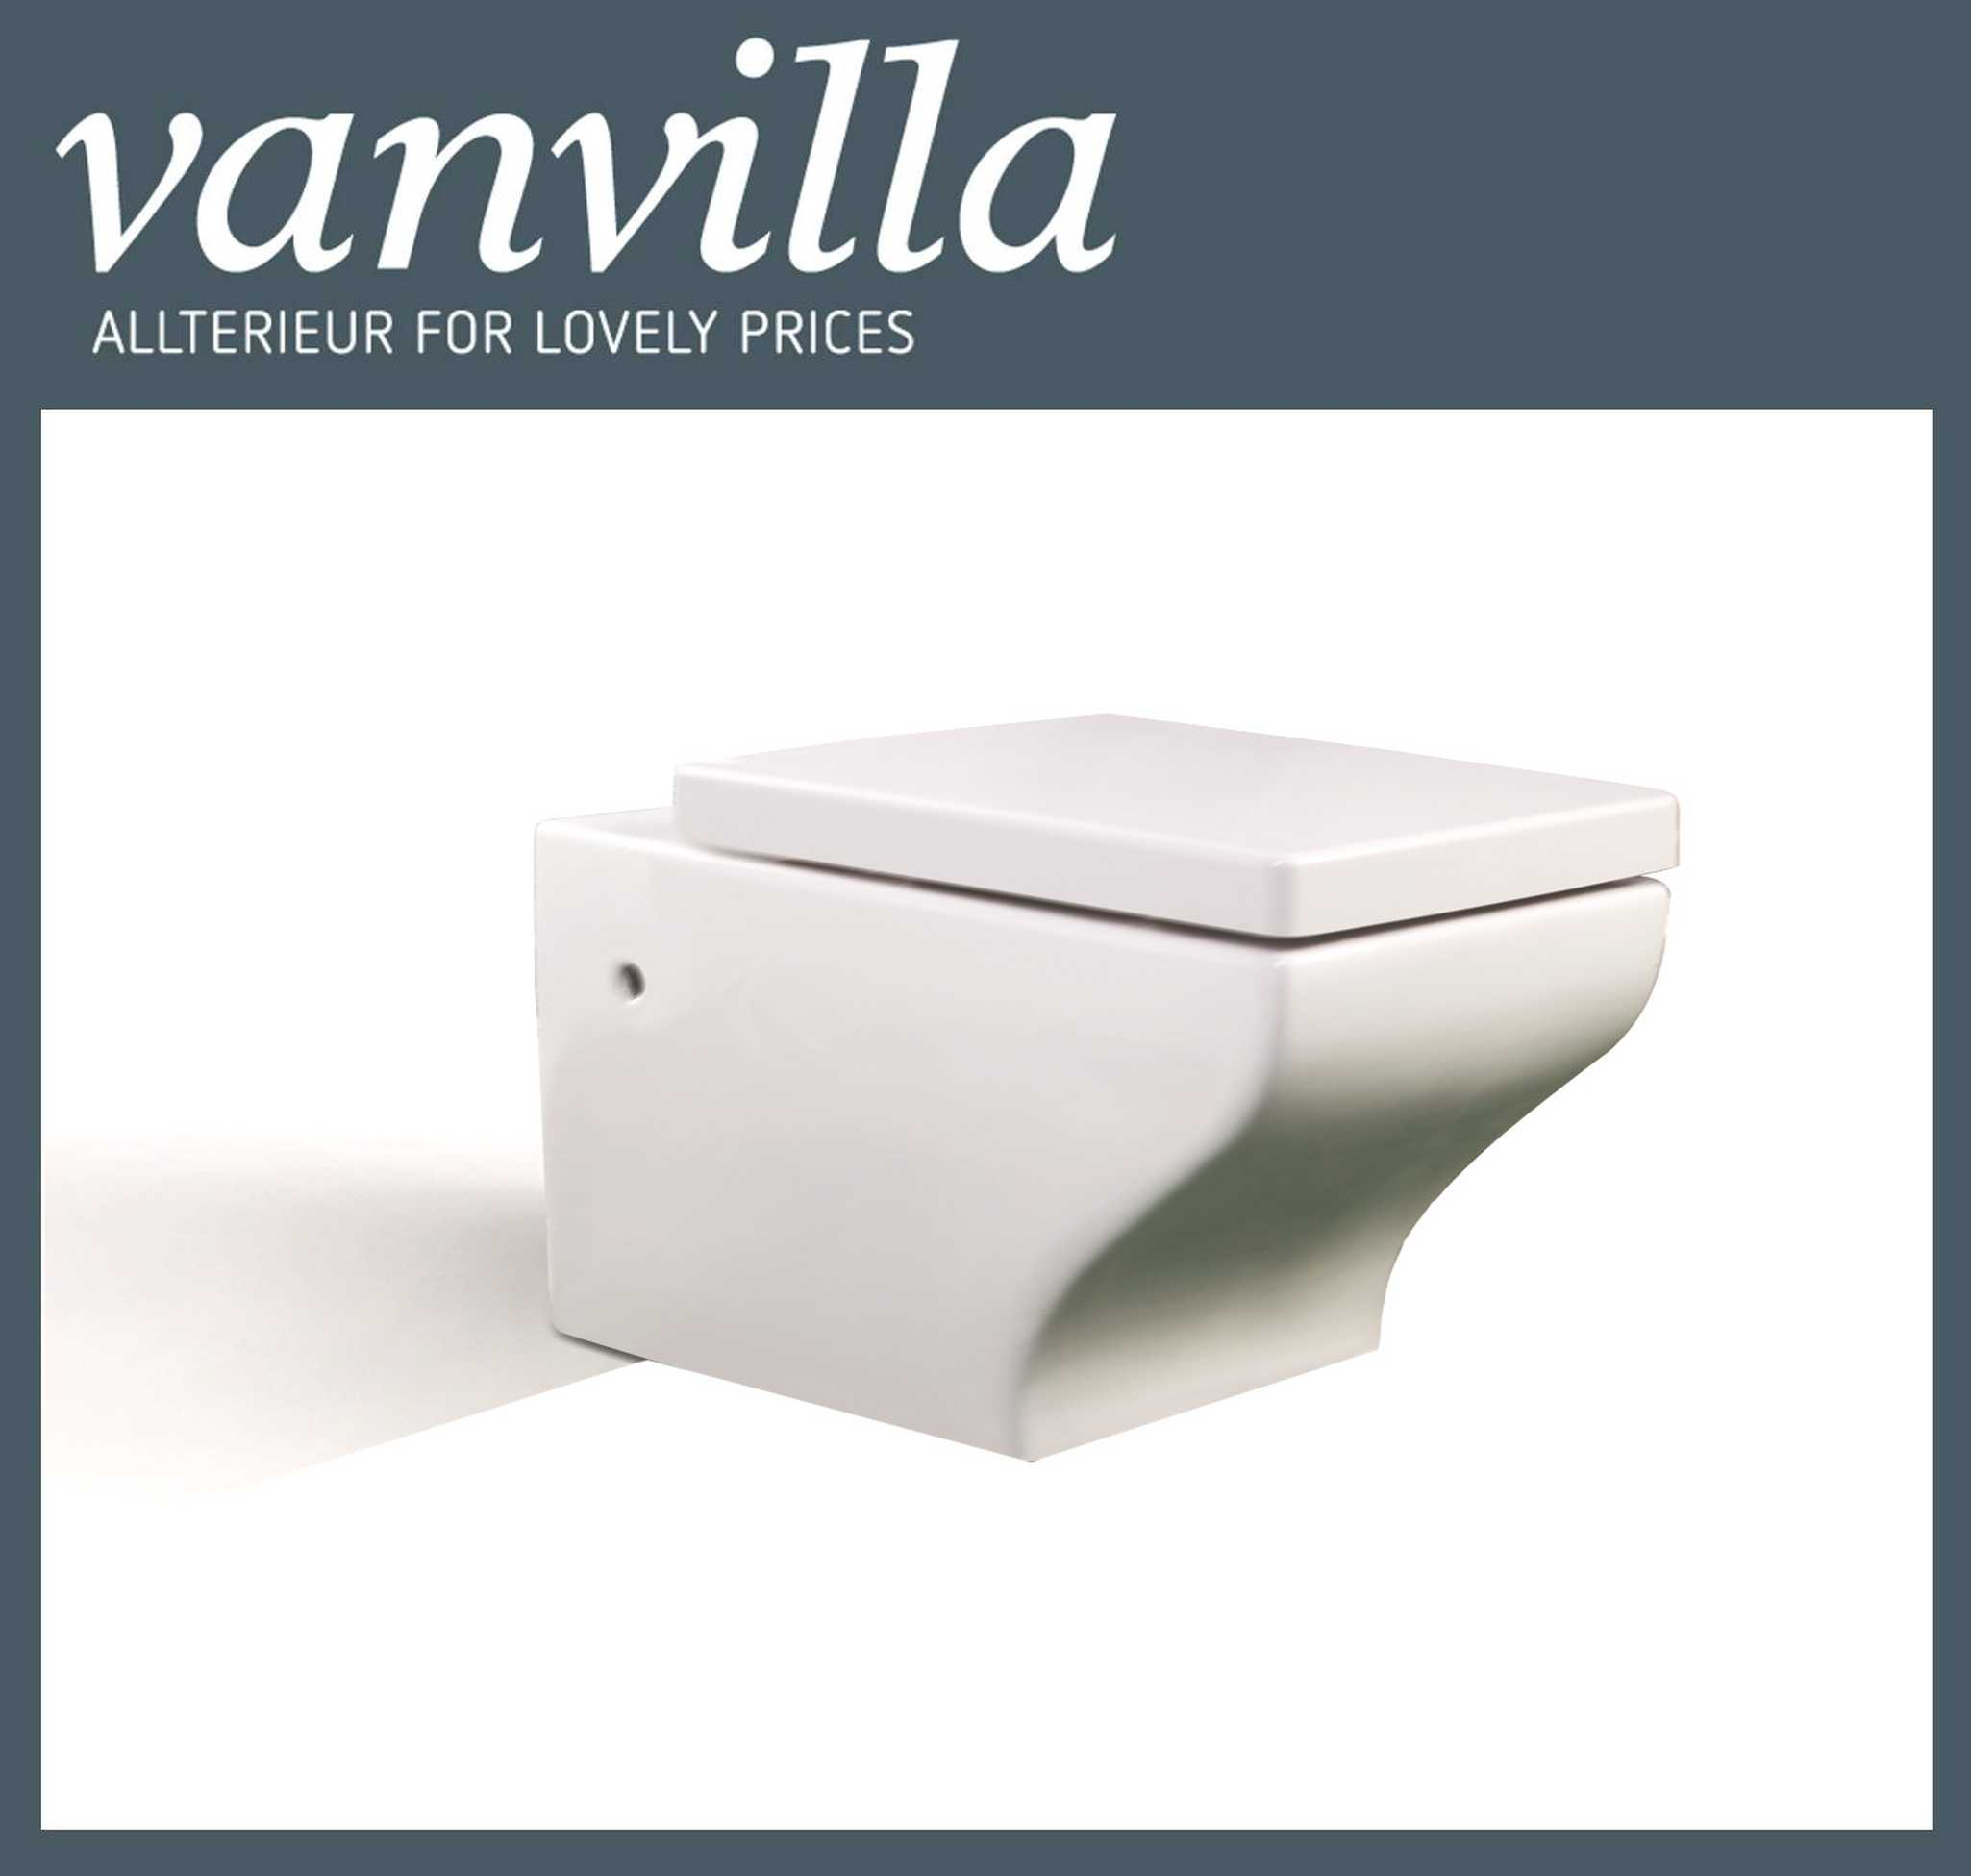 vanvilla Design Hänge WC 888 inkl. Soft close